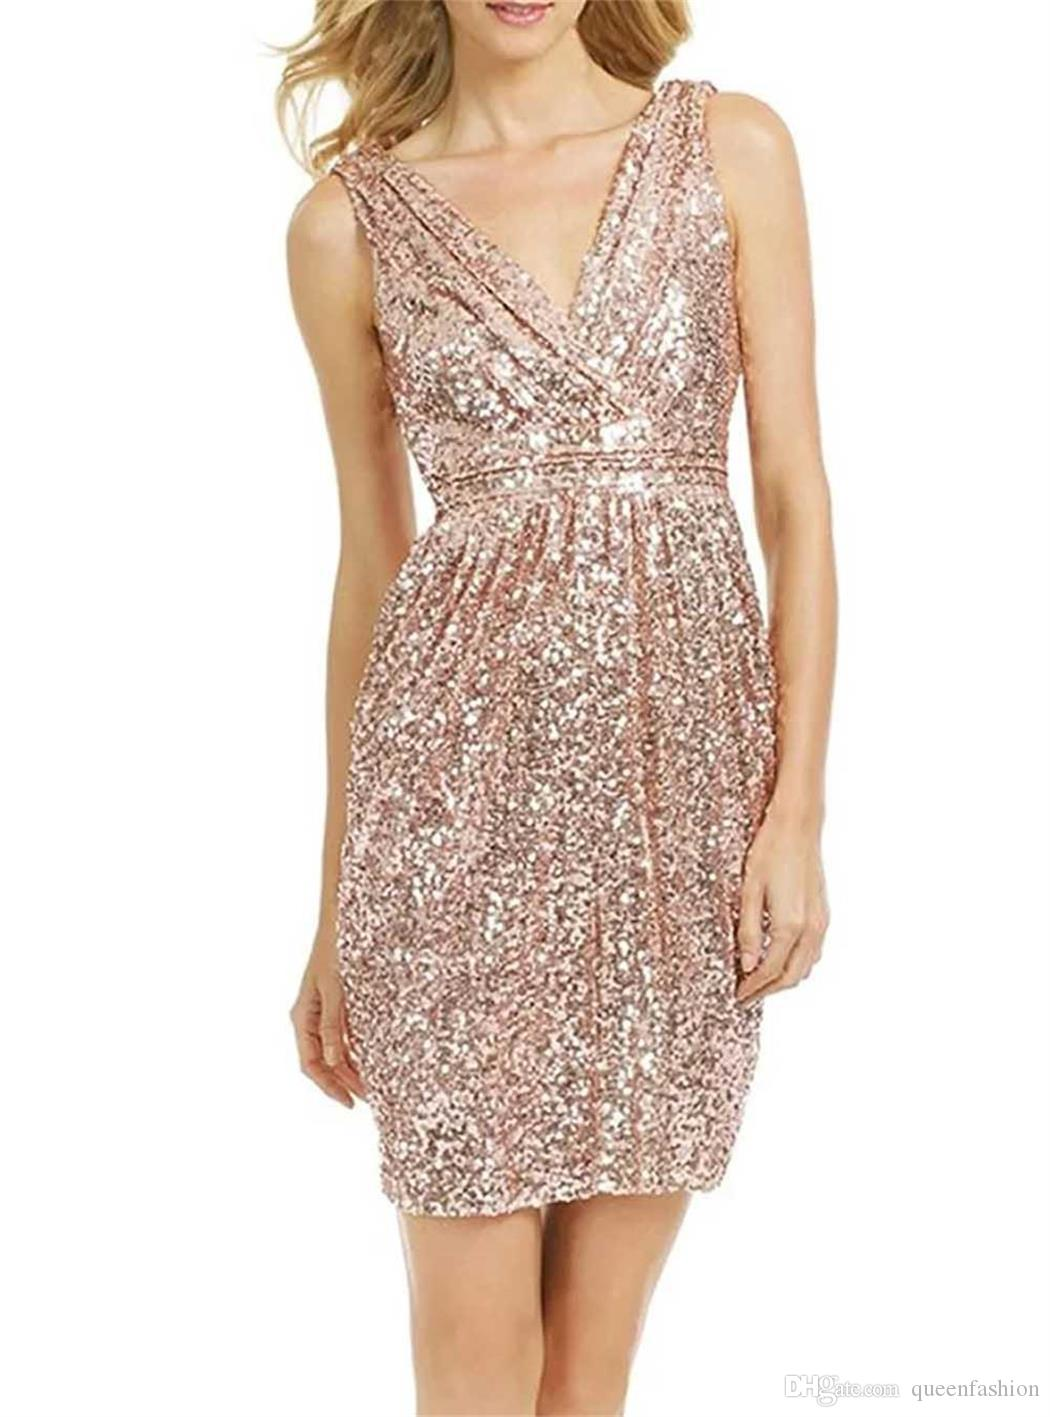 Rose Gold Sequin Bridesmaid Dresses V-neck Sheath Short Bridesmaid Gowns Summer Beach Maid of Honor Dresses Cheap Special Occasion Dresses